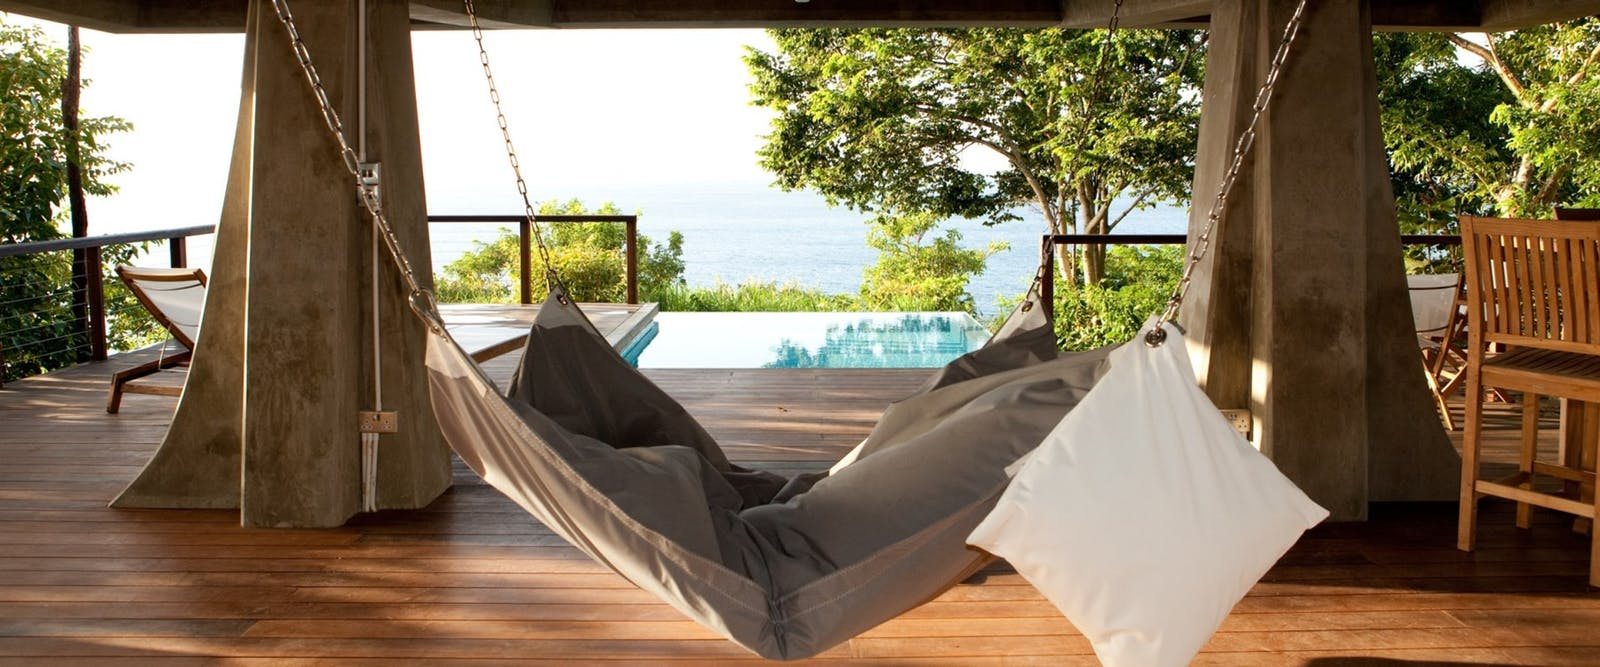 Hammock on Zabuco Honeymoon Villa Terrace at Secret Bay, Dominica